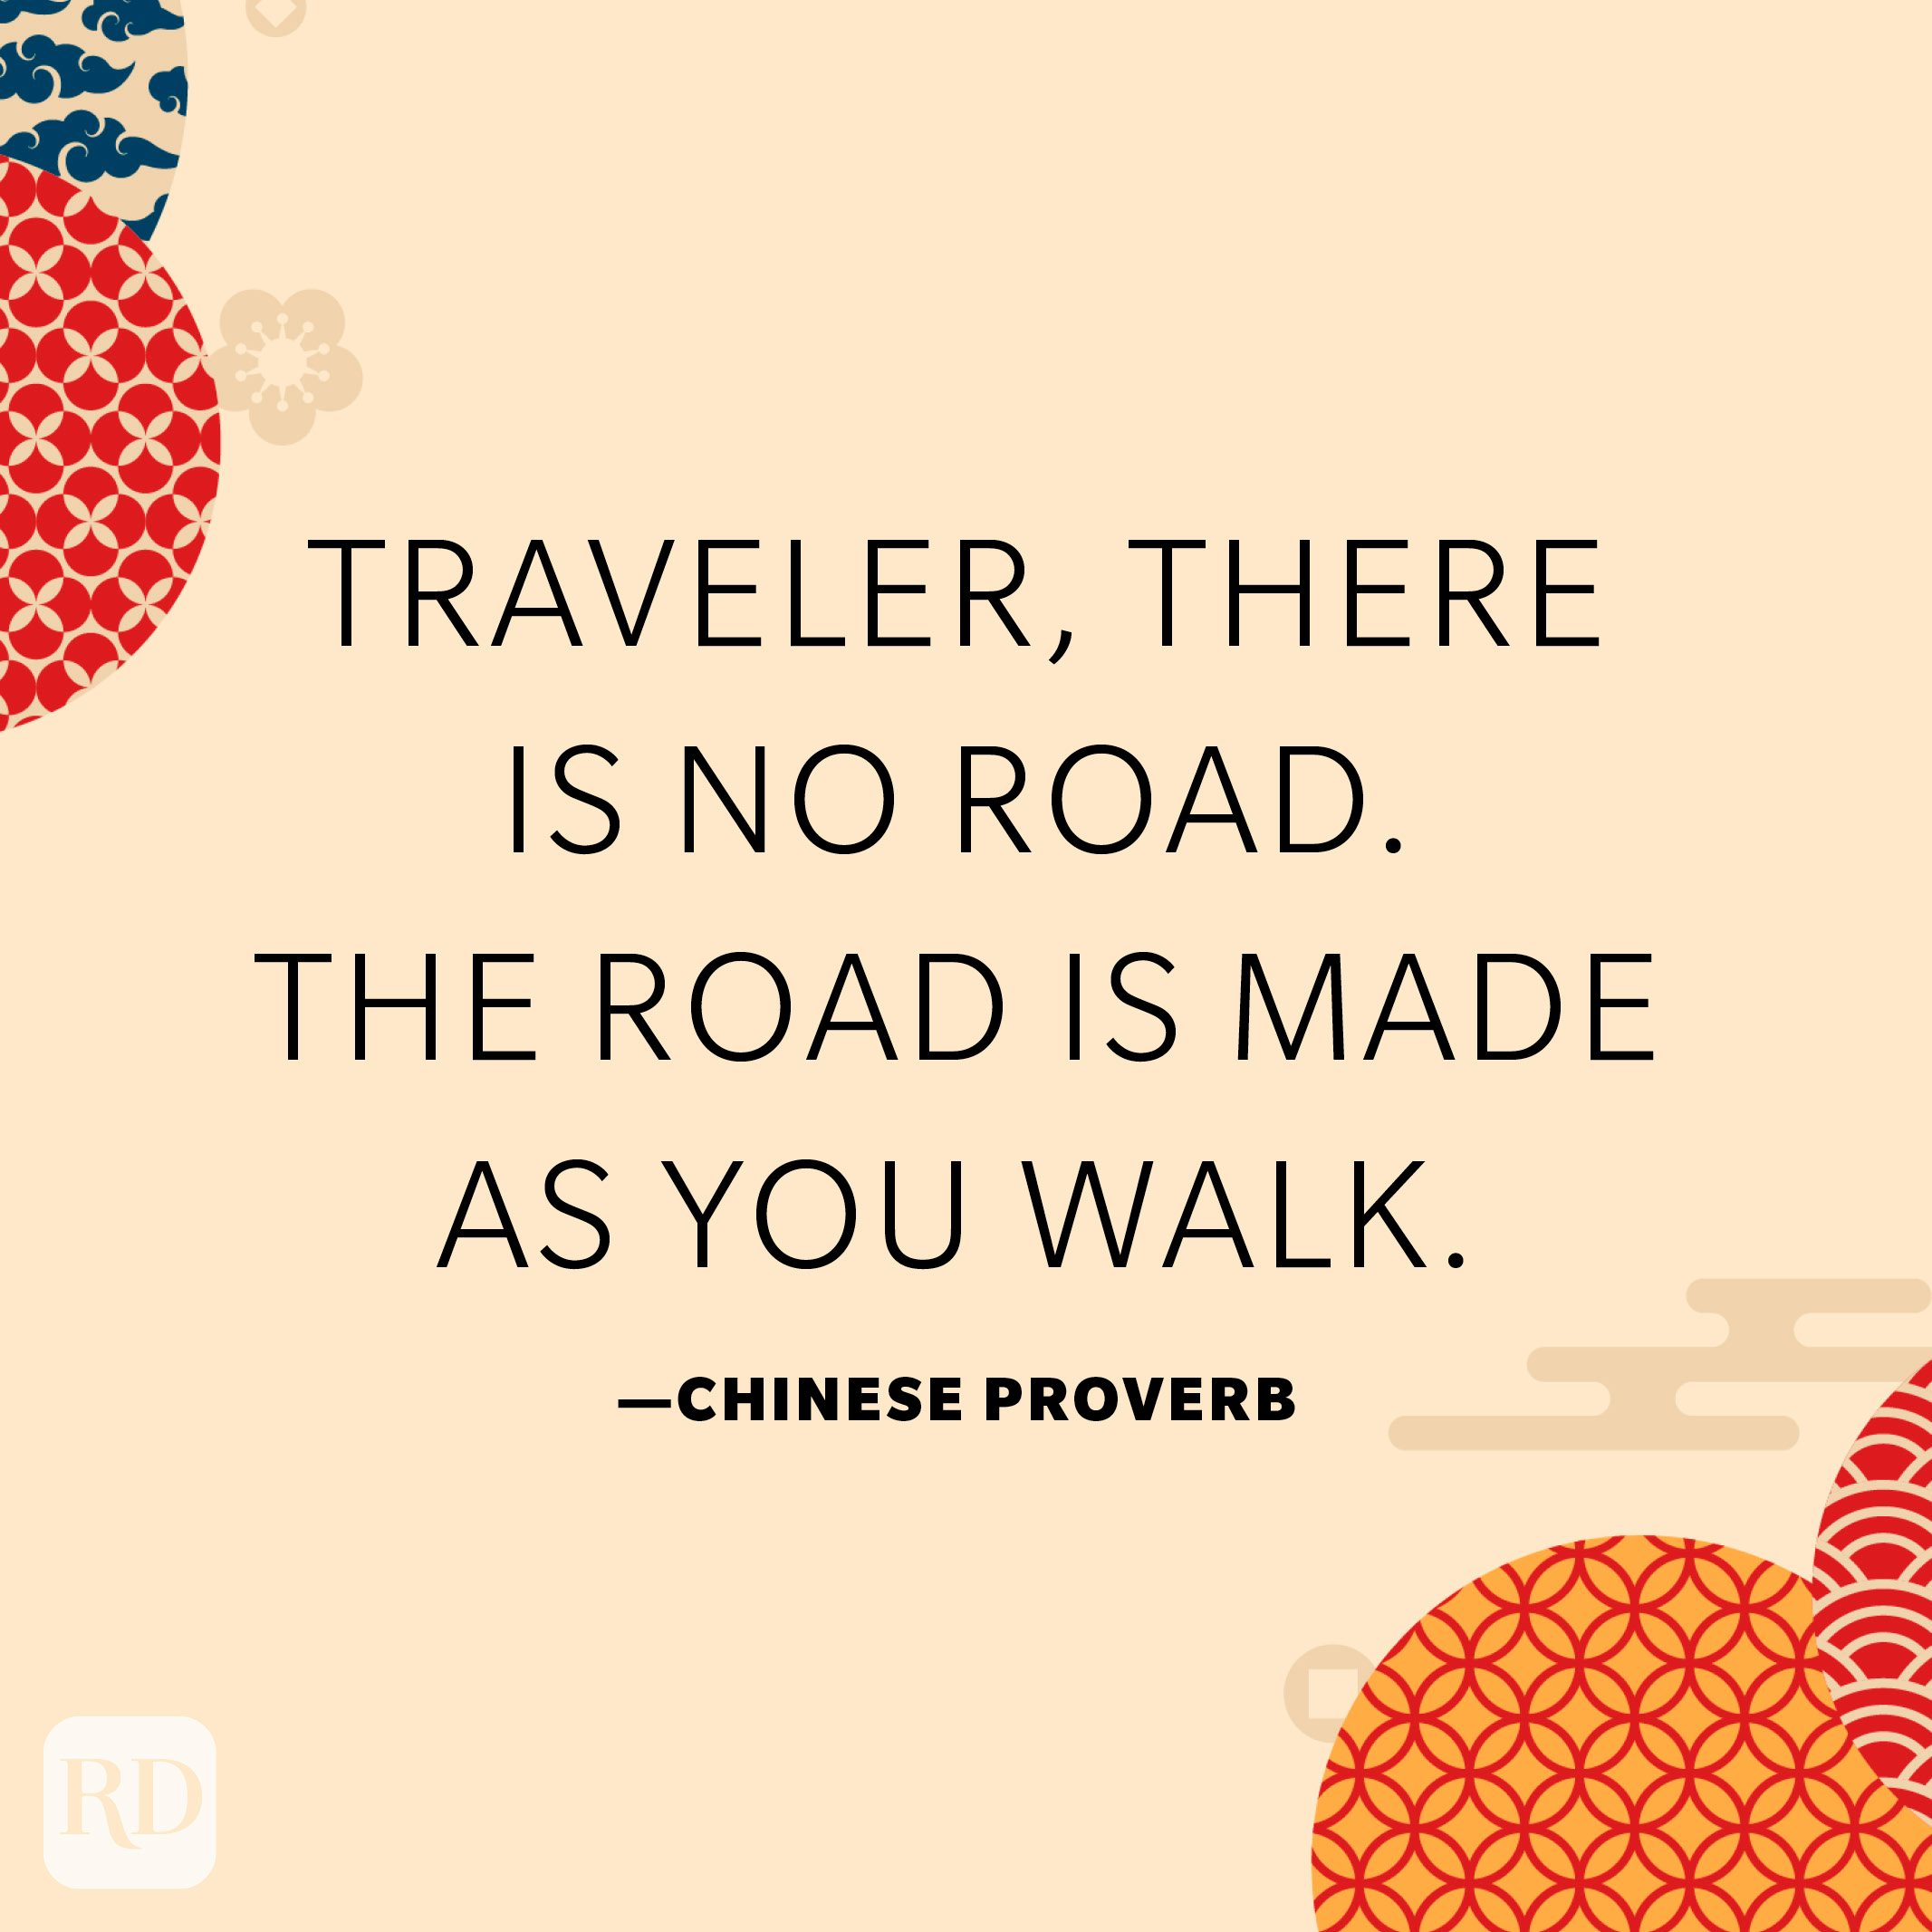 Traveler, there is no road. The road is made as you walk.